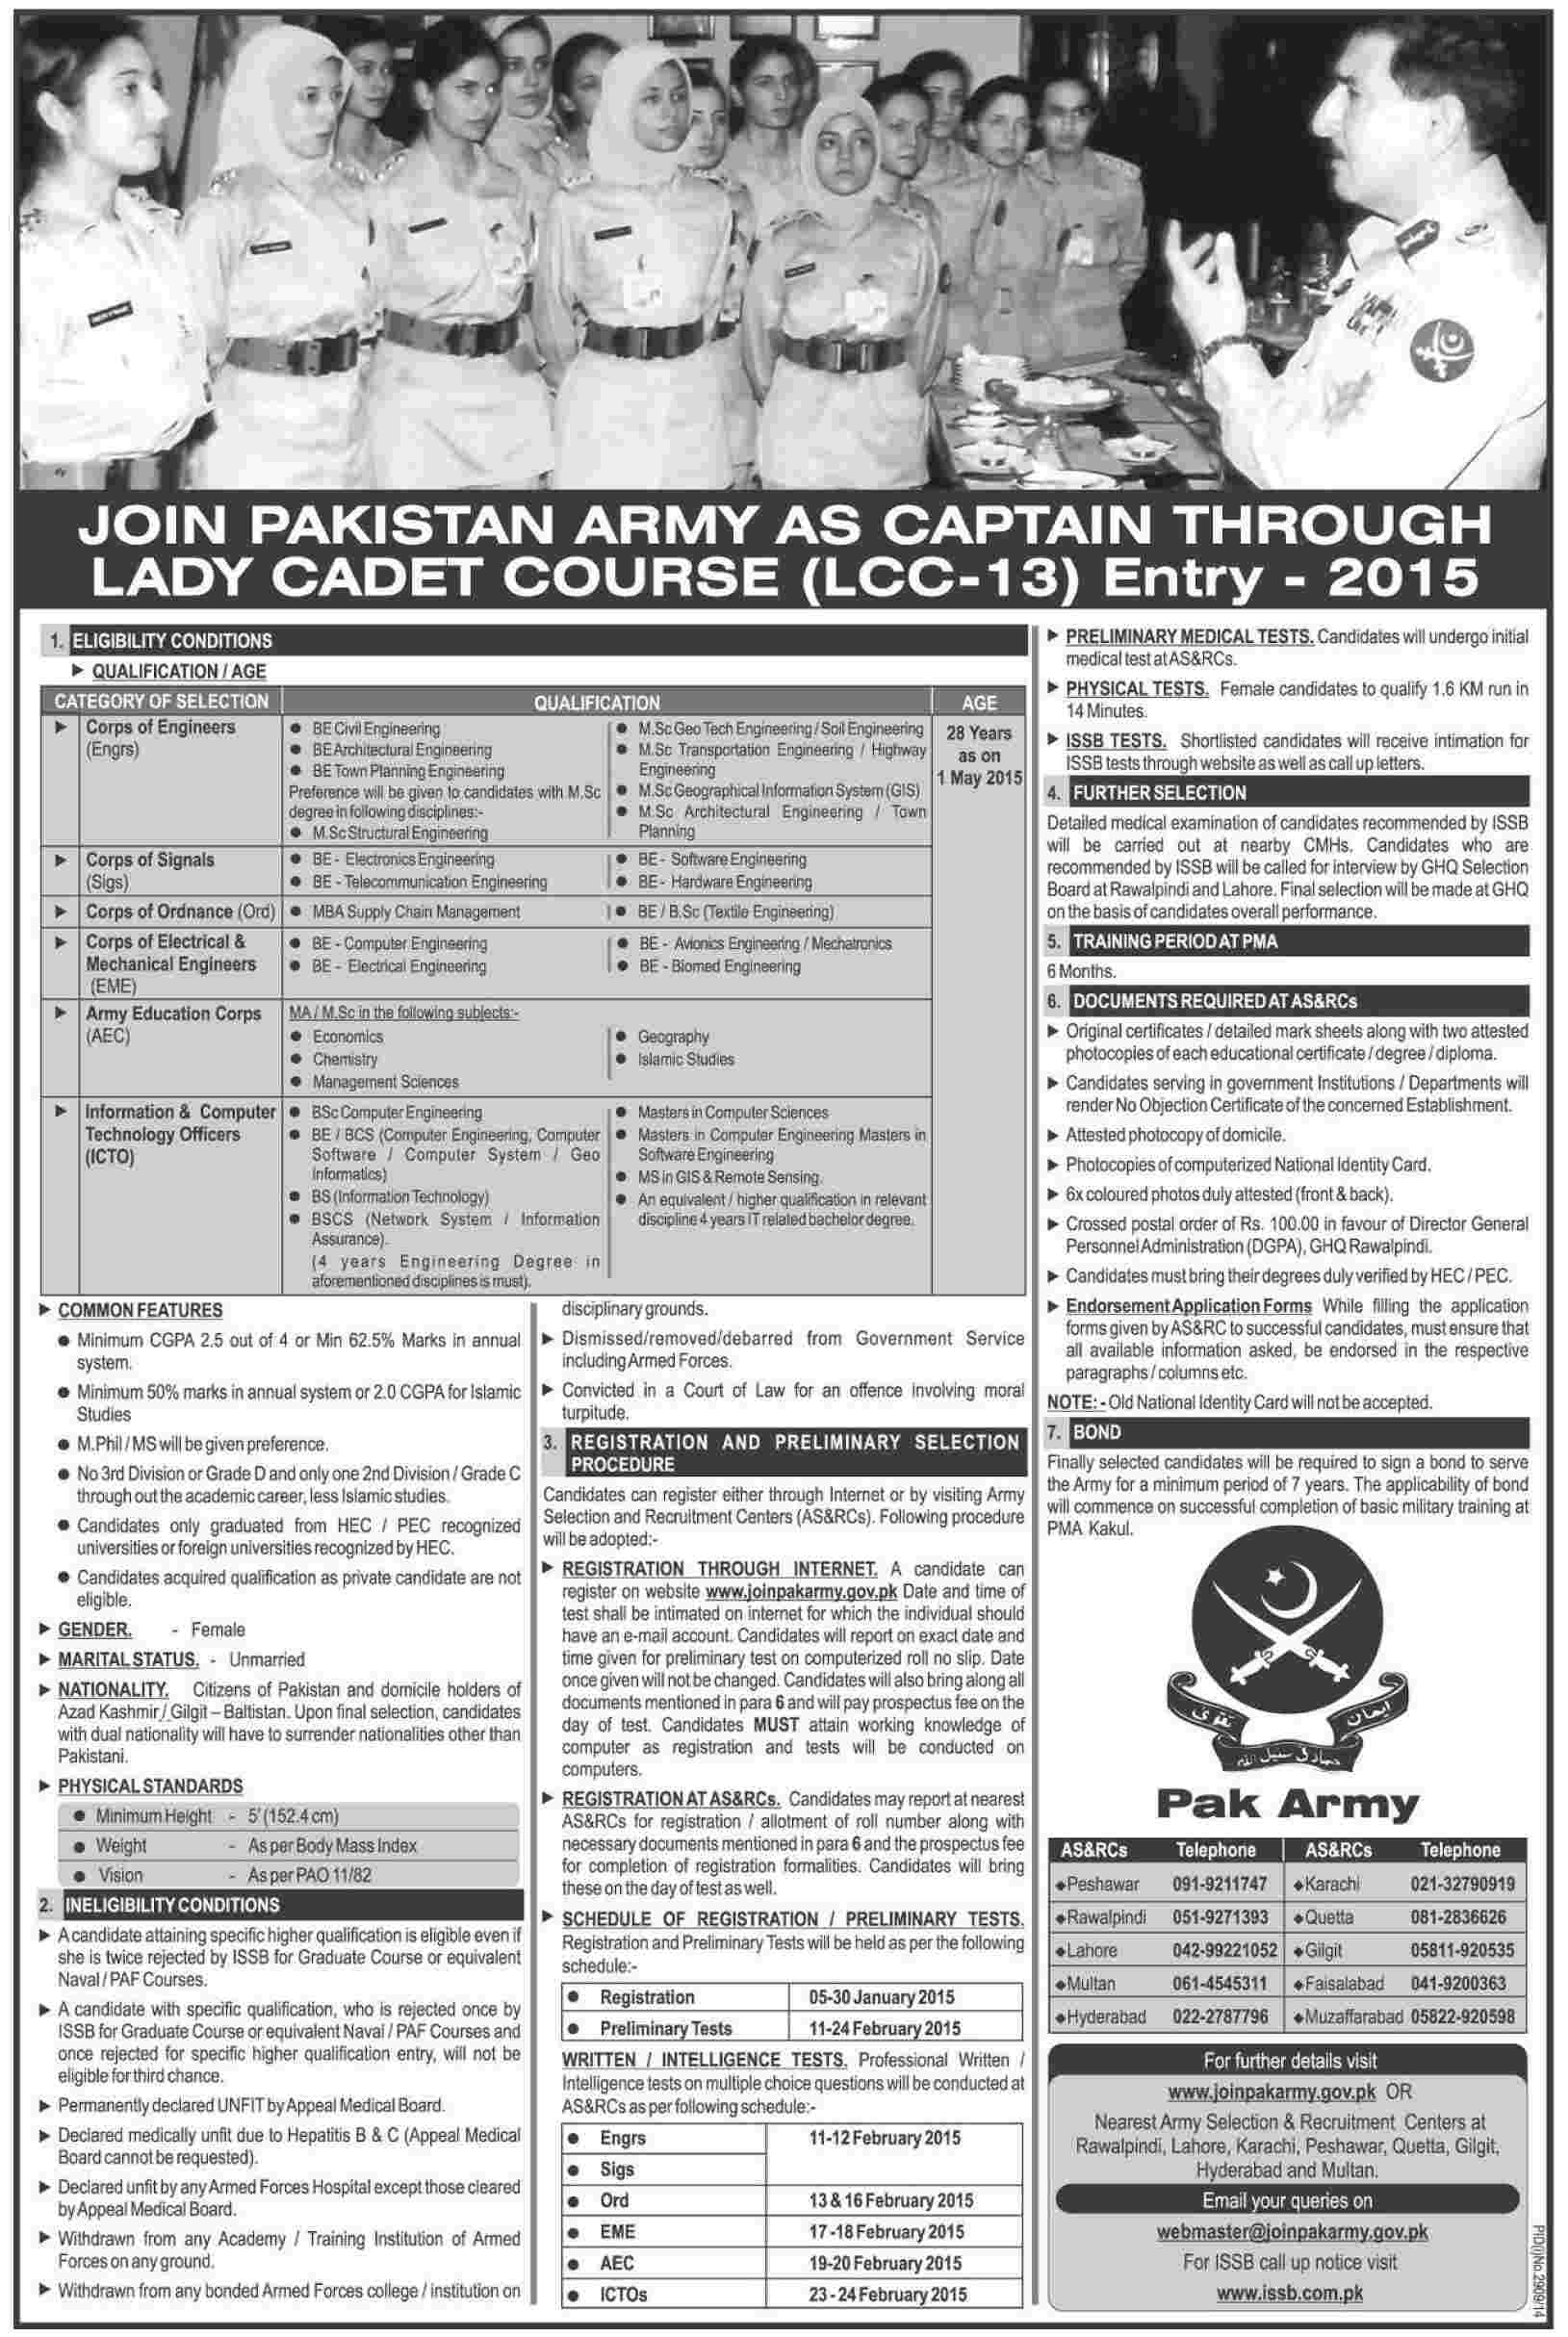 Pakistan Army Jobs as Captain 2015 Through Lady Cadet Course LCC-13